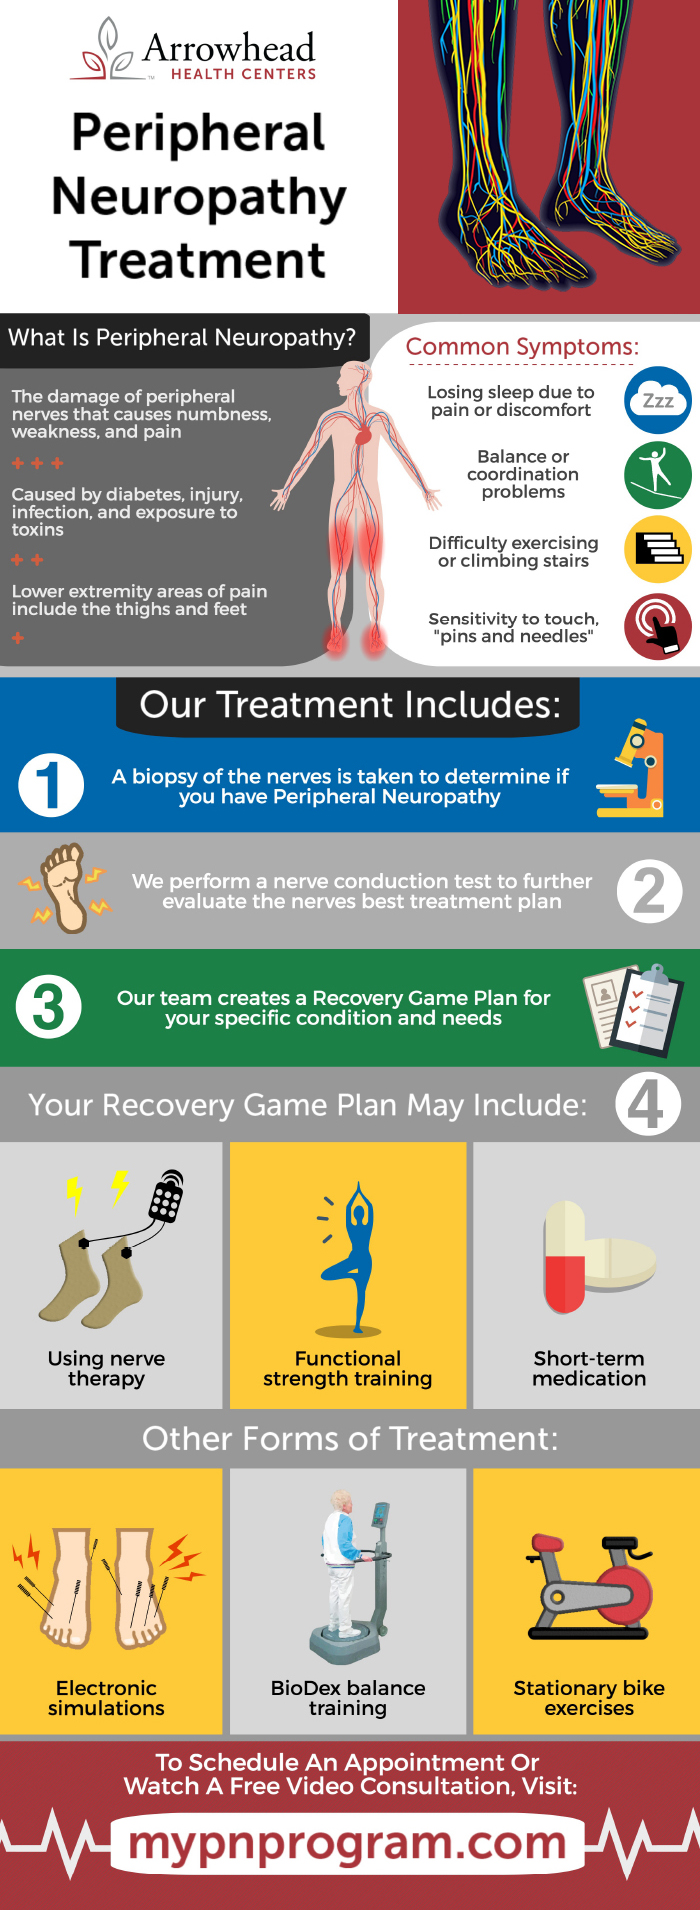 Peripheral Neuropathy Treatment (infographic)  Arrowhead. Mikrotik Billing System Help With State Taxes. Are 529 Plan Contributions Tax Deductible. Does A Misdemeanor Show Up On A Background Check. Mattress Store Portland Oregon. Home Water Heater Systems Uc Davis Vet Clinic. University Of Cincinnati Mba. Are Memory Foam Mattresses Hot. Auto Insurance Dayton Ohio Ftp Online Storage